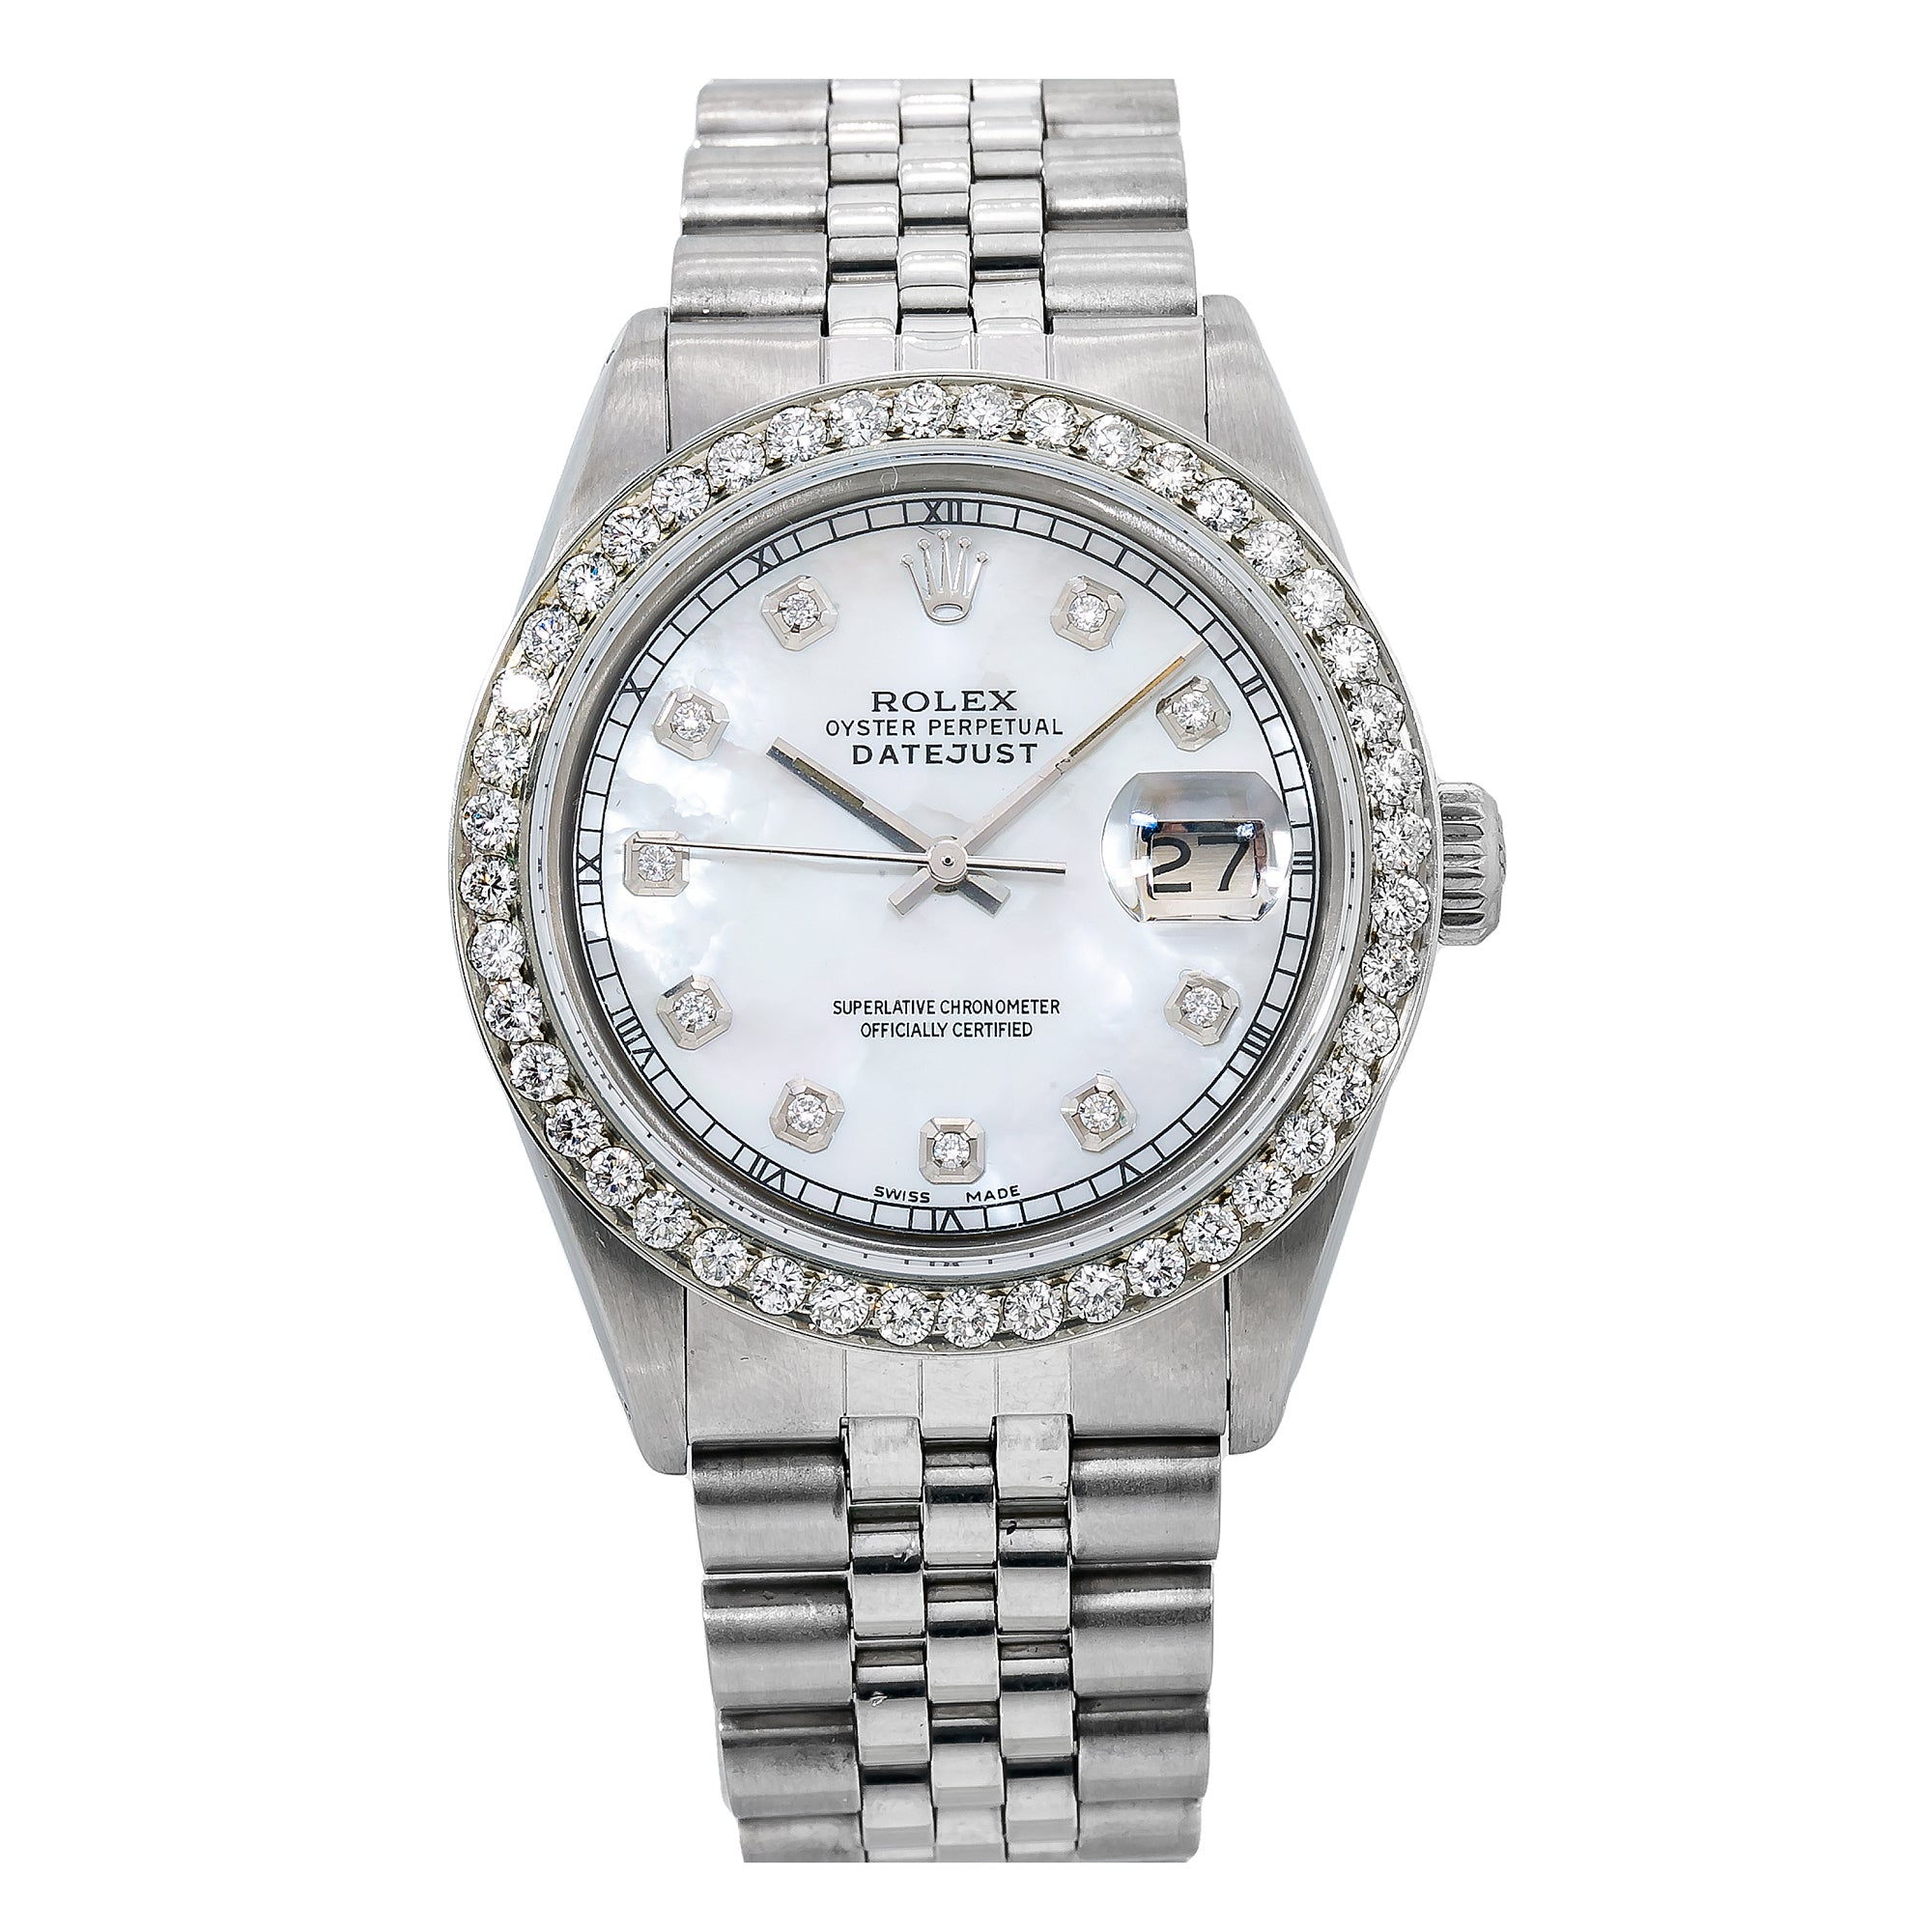 Rolex Datejust 1601 36MM Silver Diamond Dial With 1.25 CT Diamonds